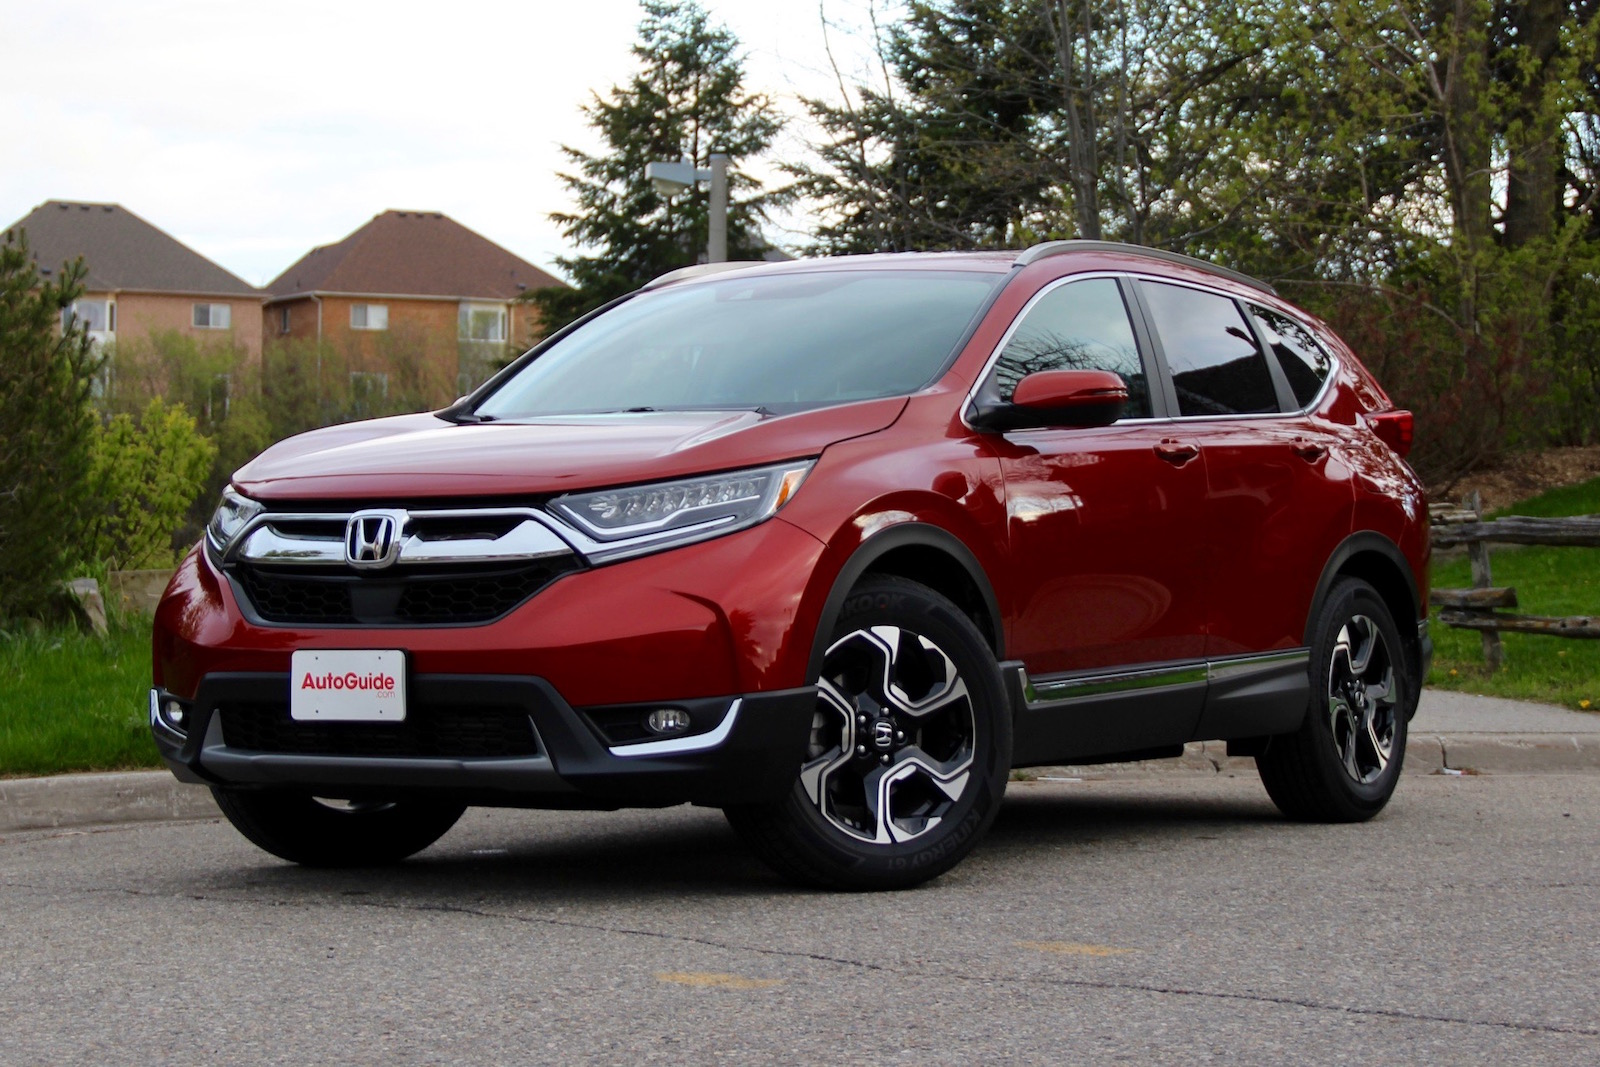 2017 honda cr v long term test update road trip edition for Truecar com honda crv